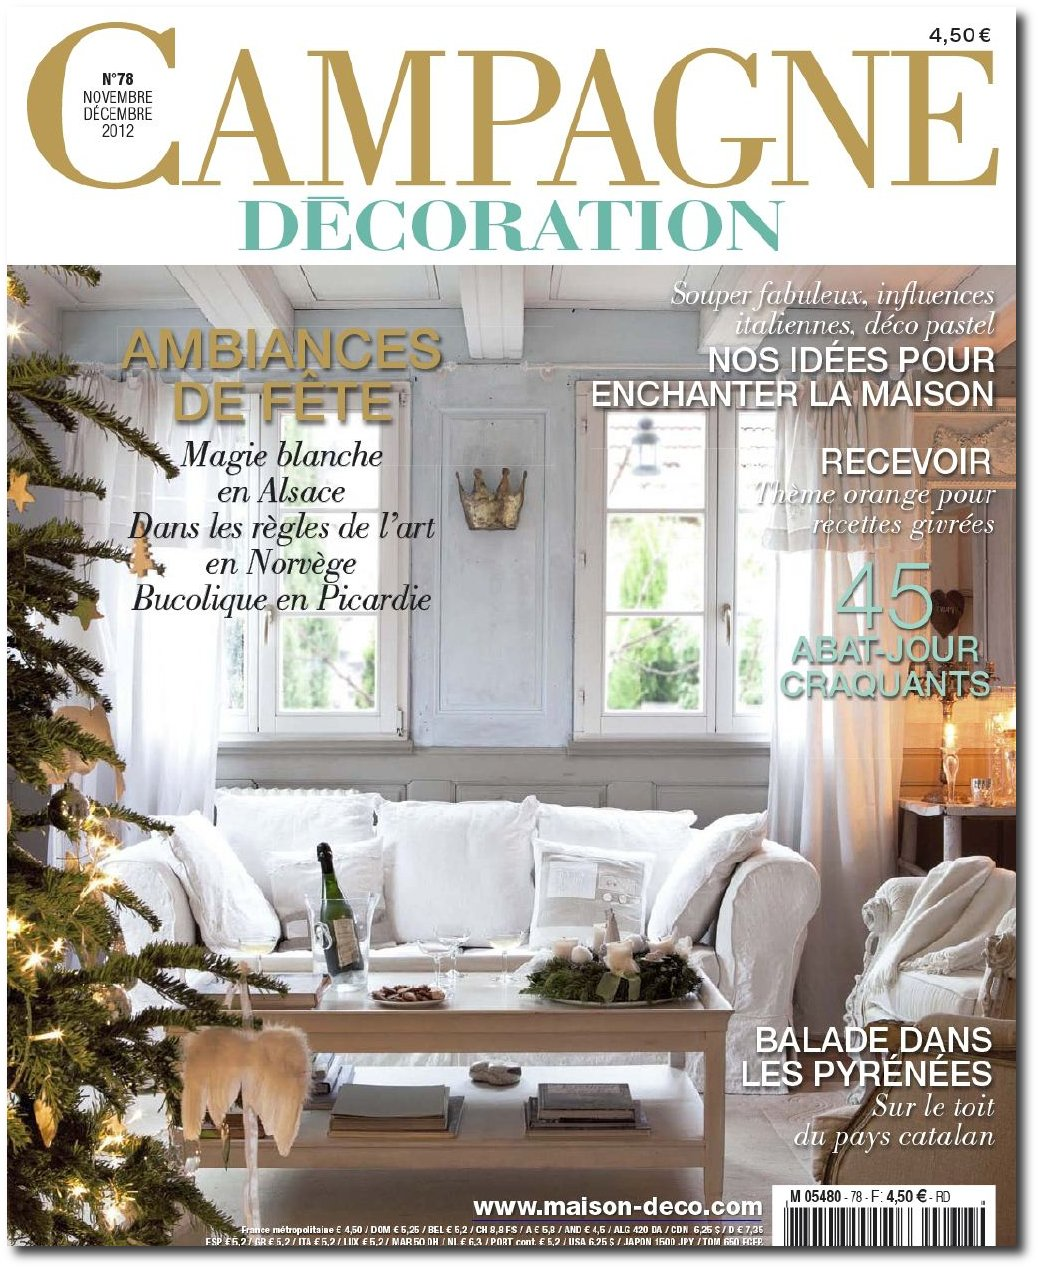 International interior decorating magazines worth buying for Campagne decoration